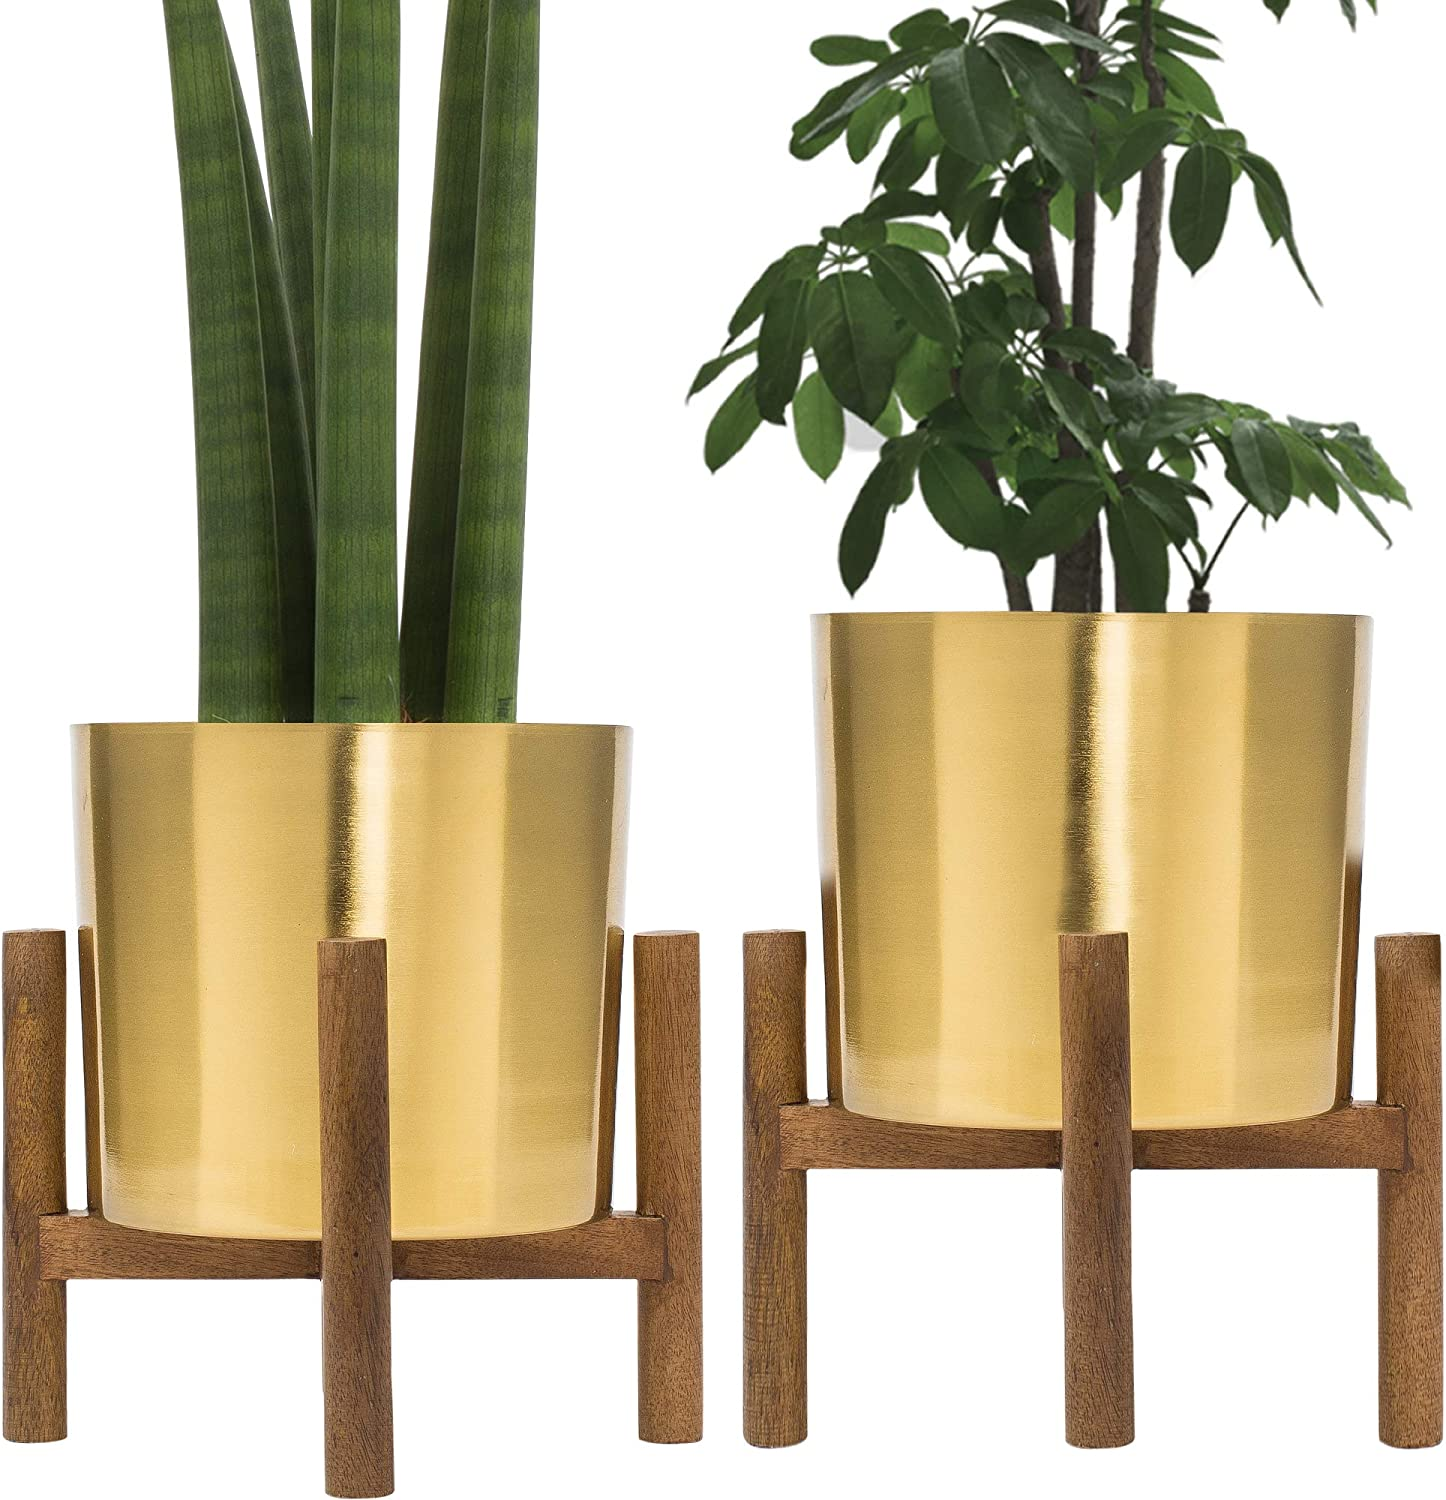 Set of 2 Mid Century Brass Plated Gold Planter with Stand, 7 Inch Large Metal Pot with Mango Wood Stand, Modern Flower Pot Decor for Living Room, Orchid, Aloe, Succulents Large Cactus Plants, Indoor